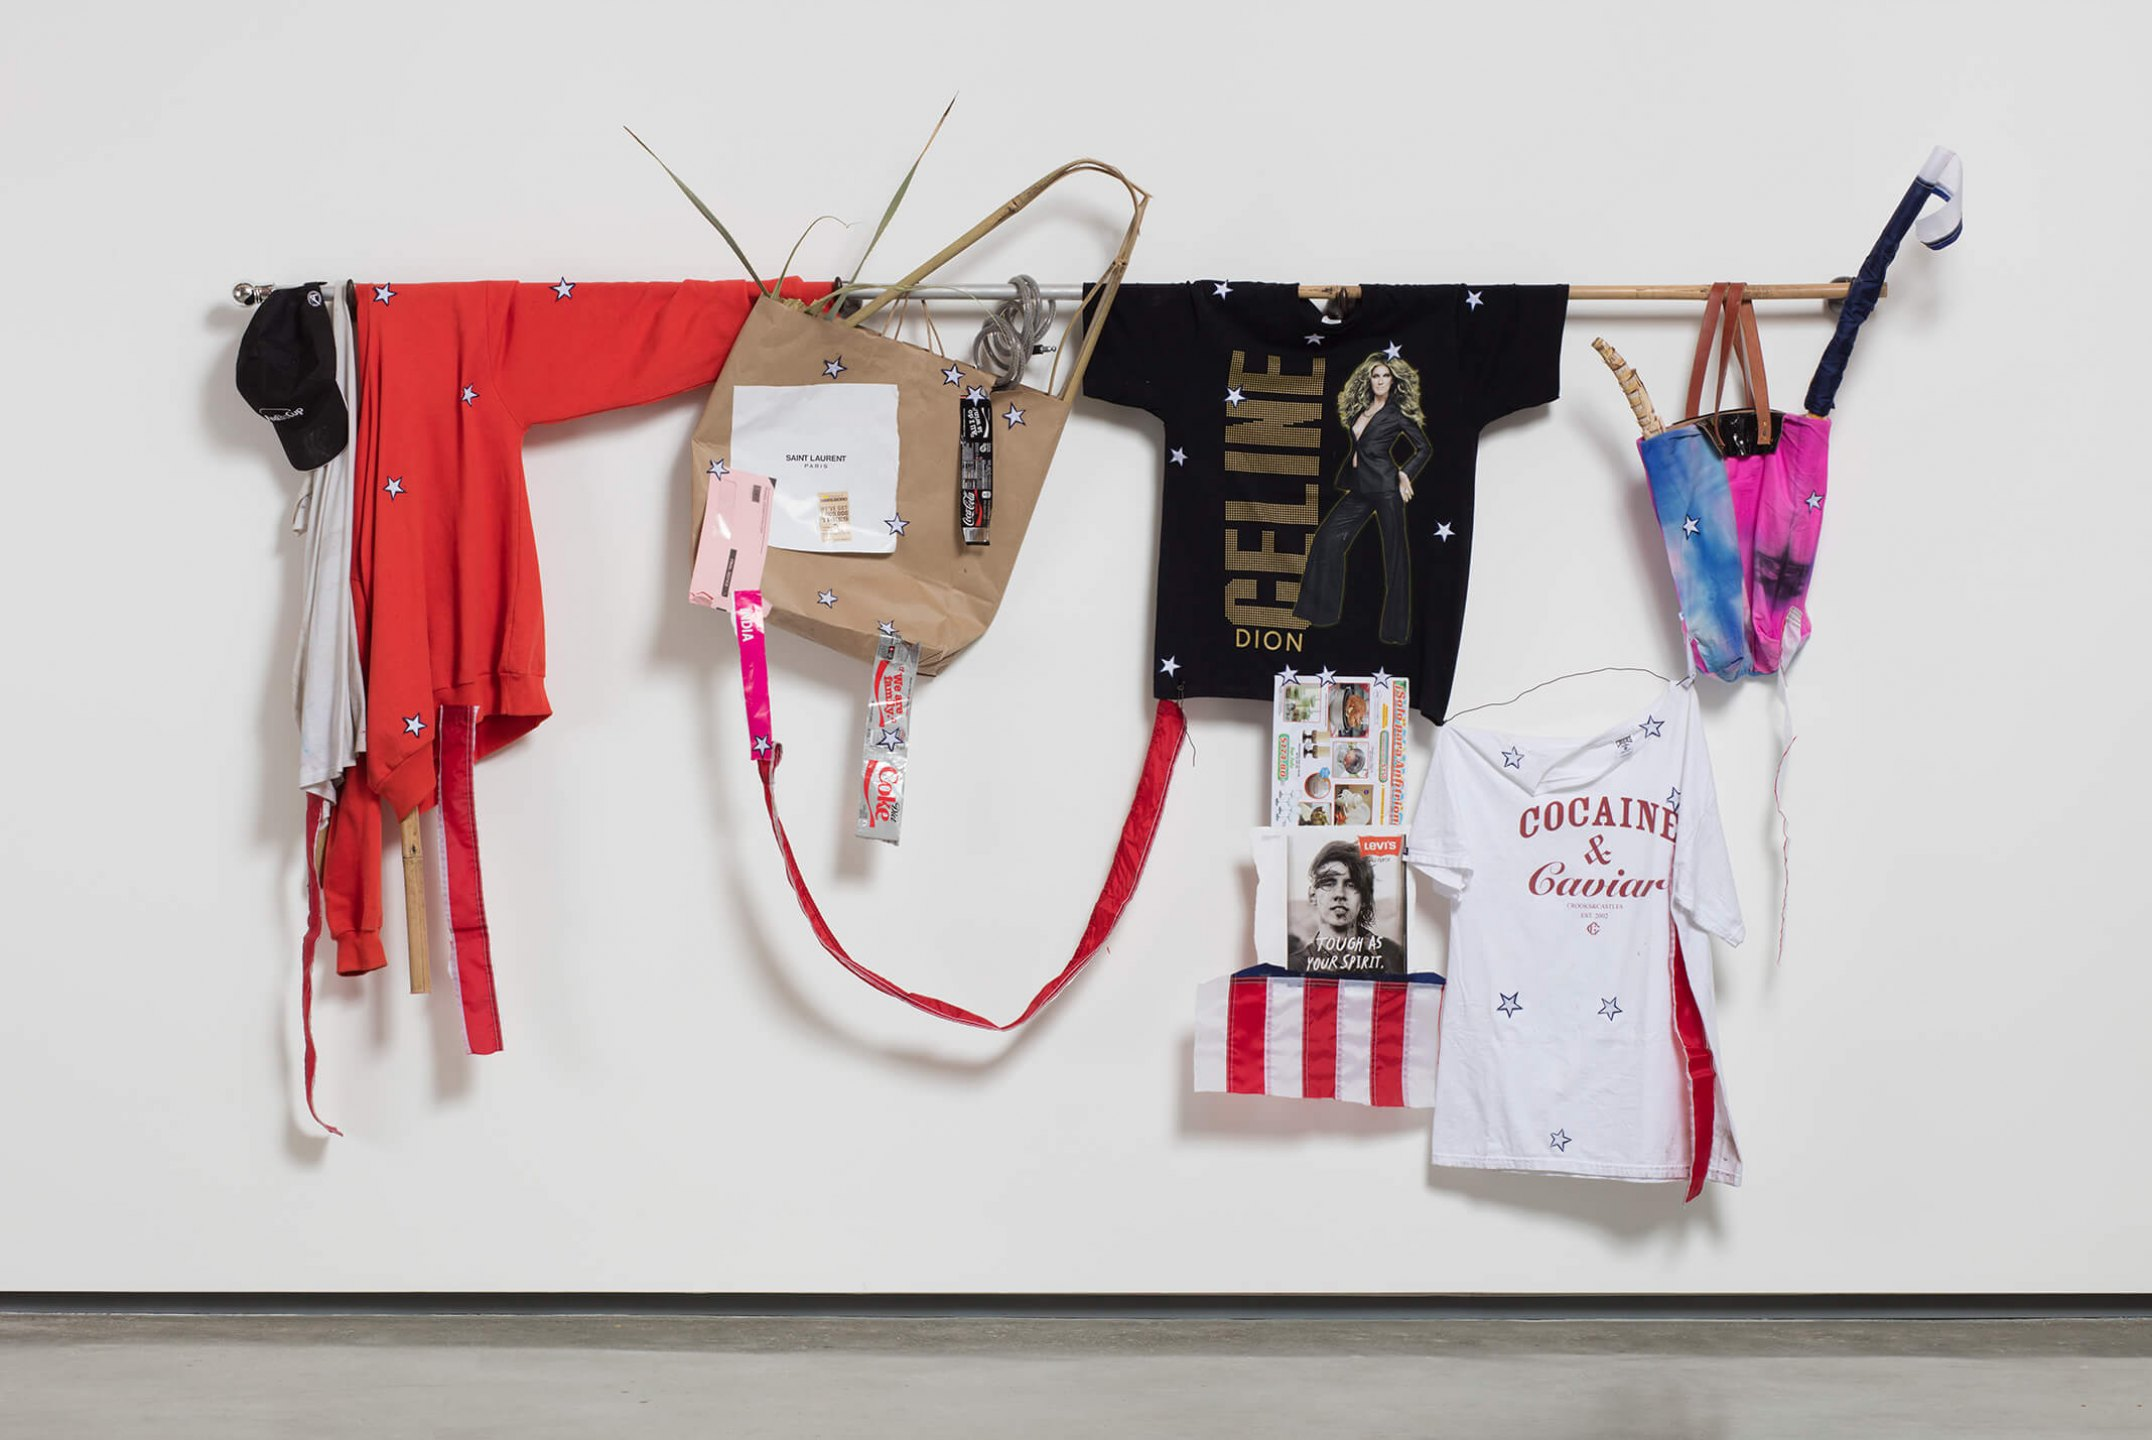 Adriano Costa, <em>Celine</em>, 2016, bronze, American flag, clothes, bamboo, sugarcane and various found objects, 170,2 × 261,6 × 48,3 cm - Mendes Wood DM